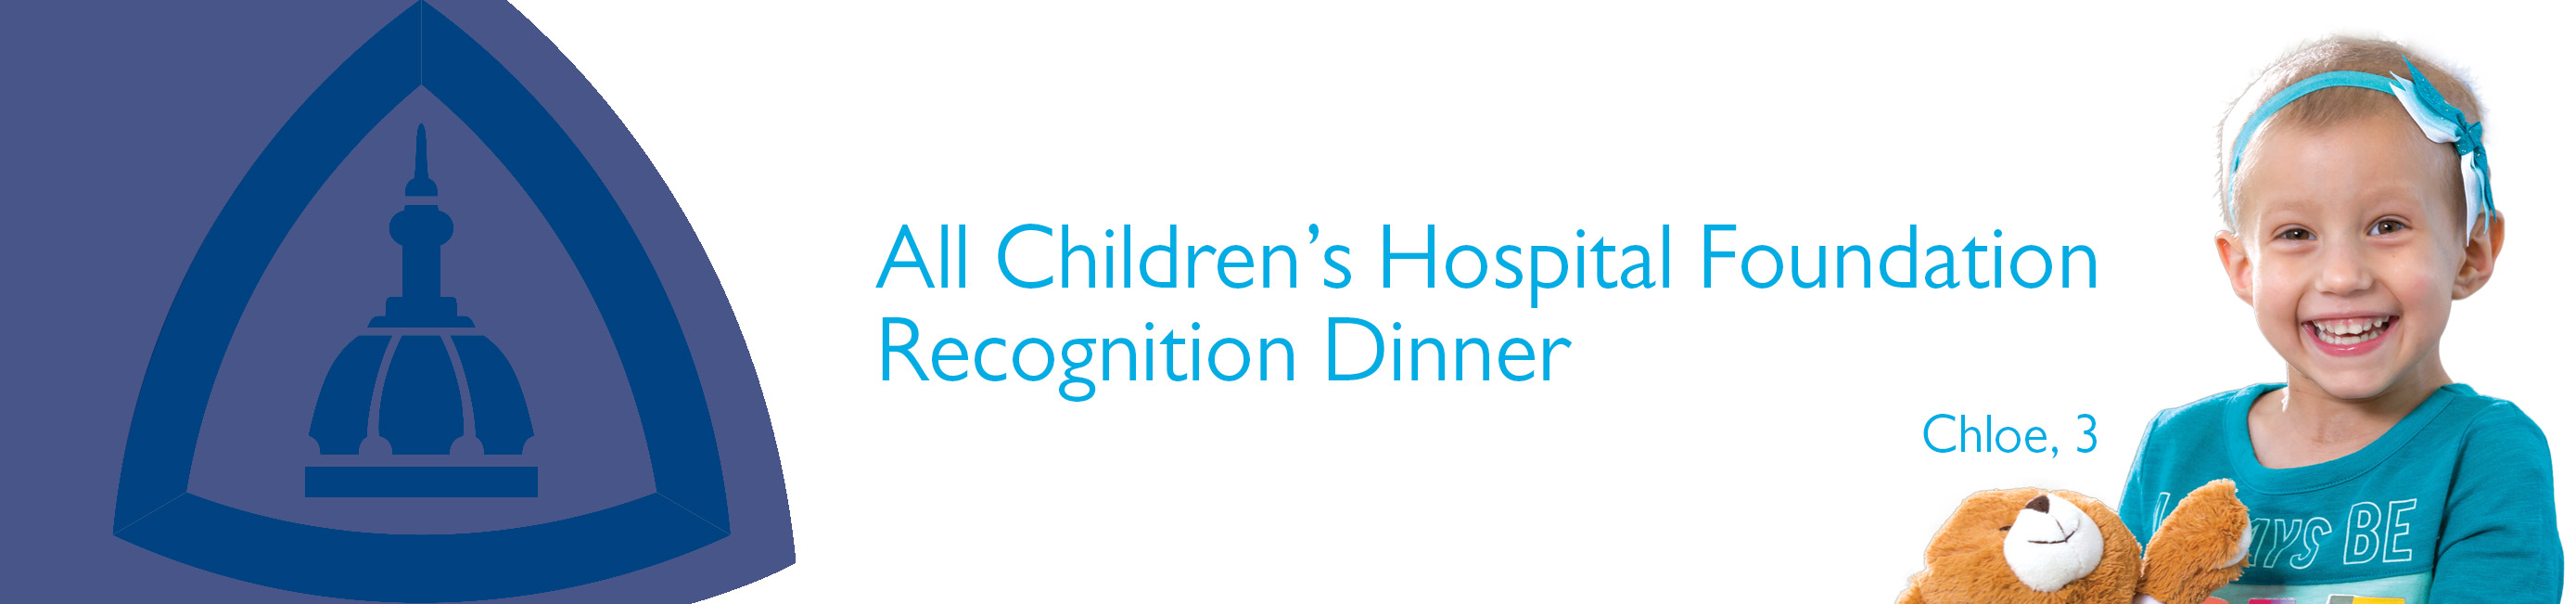 All Children's Hospital Foundation Recognition Dinner